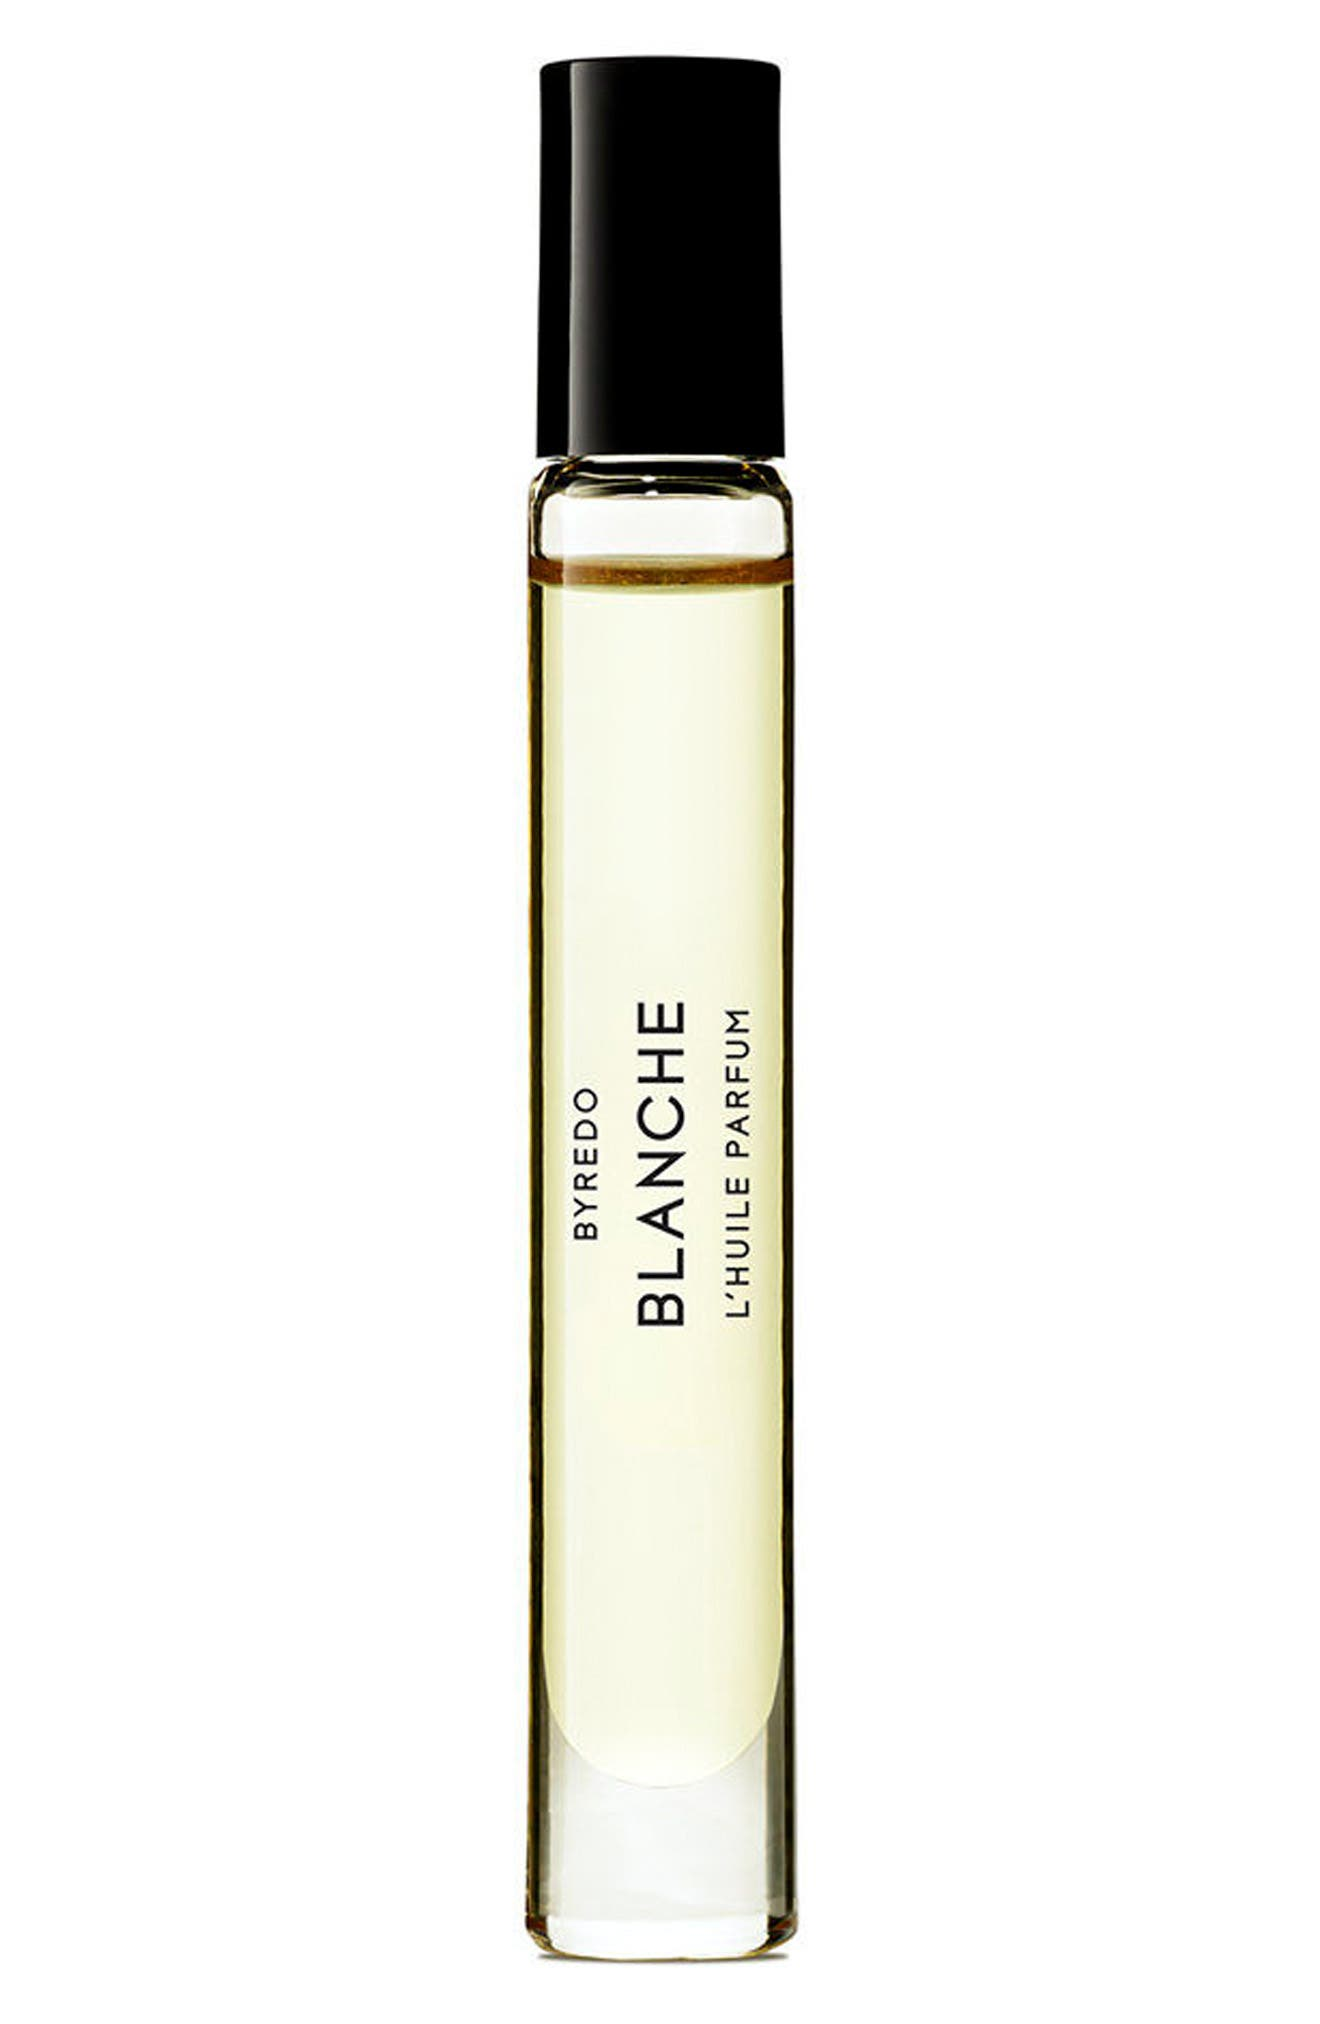 Blanche Eau de Parfum Rollerball,                         Main,                         color, No Color